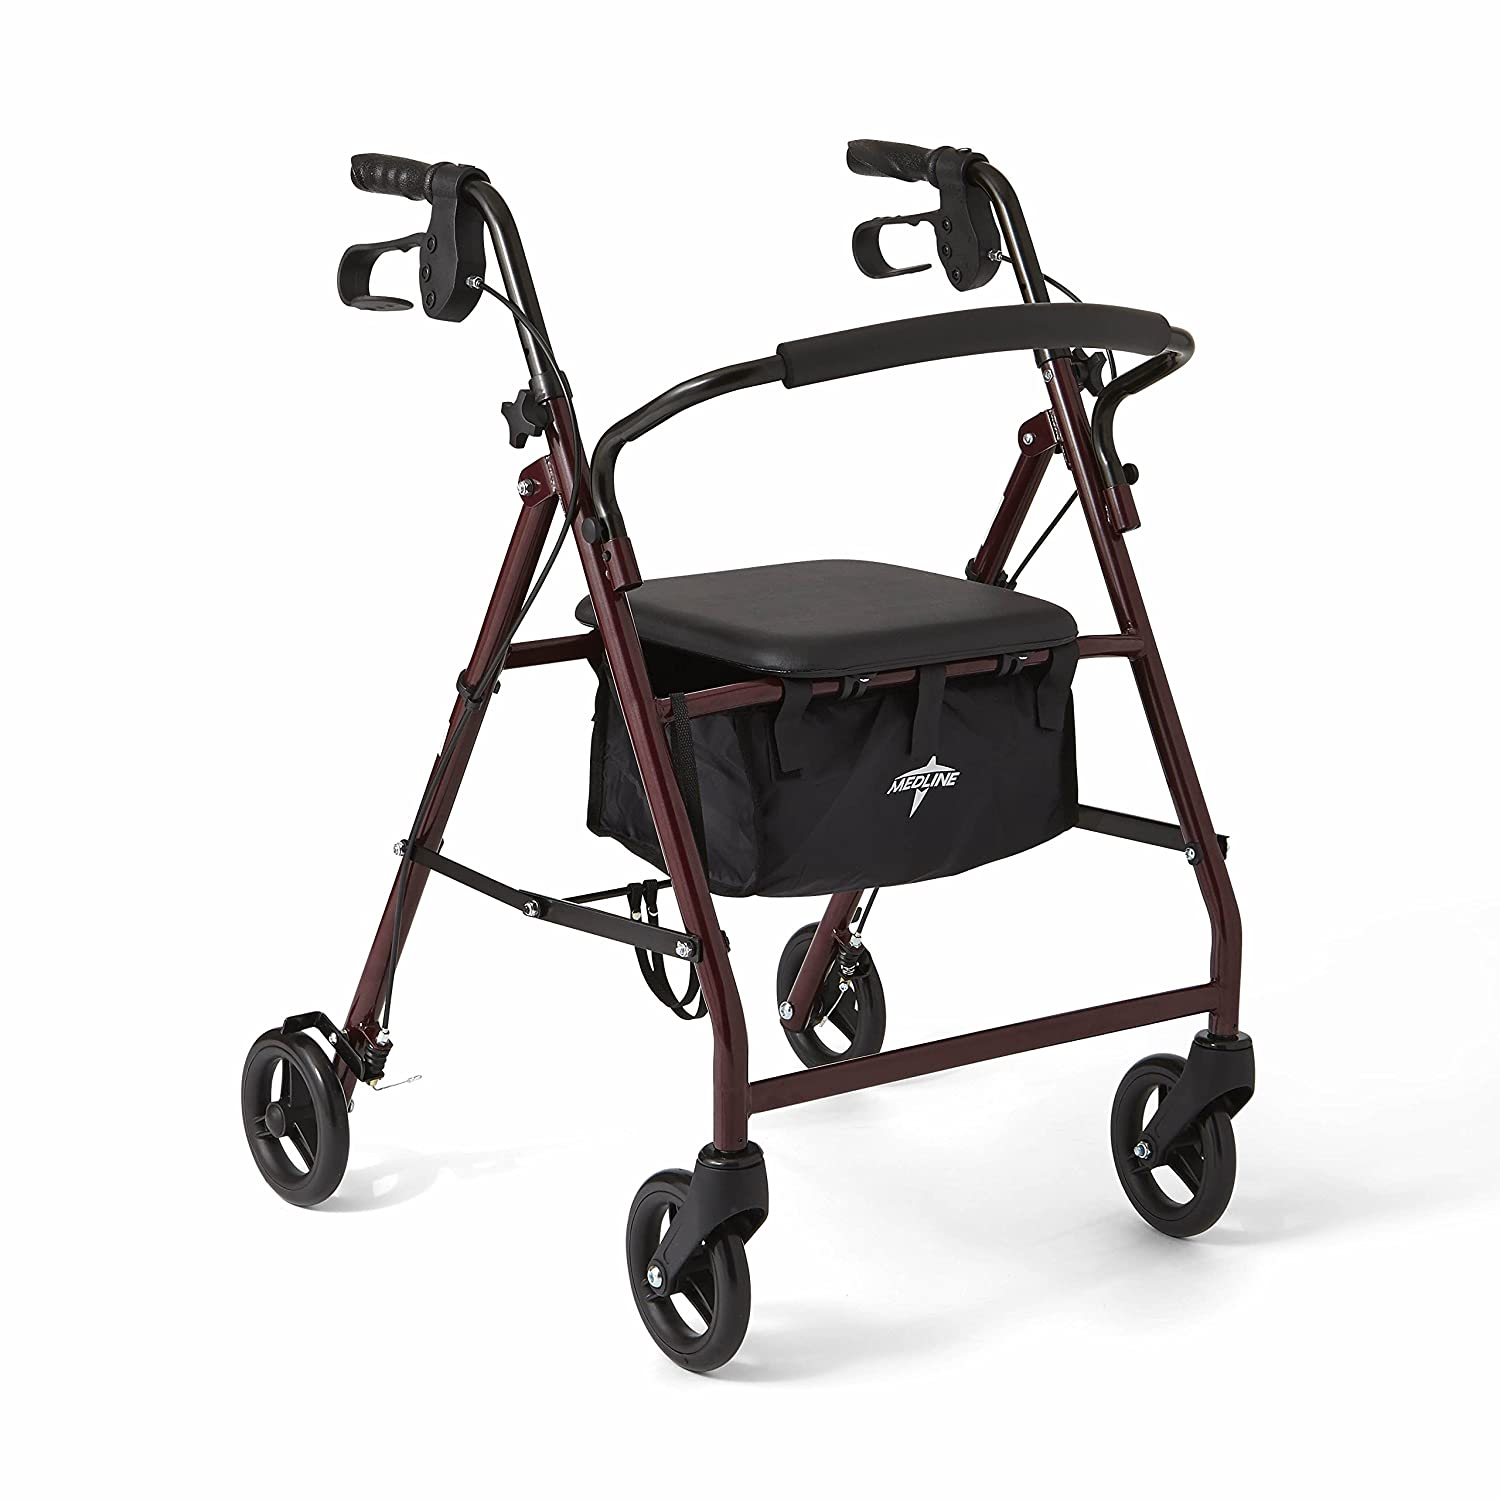 "Medline Steel Foldable Adult Rollator Mobility Walker with 6"" Wheels, Burgundy"